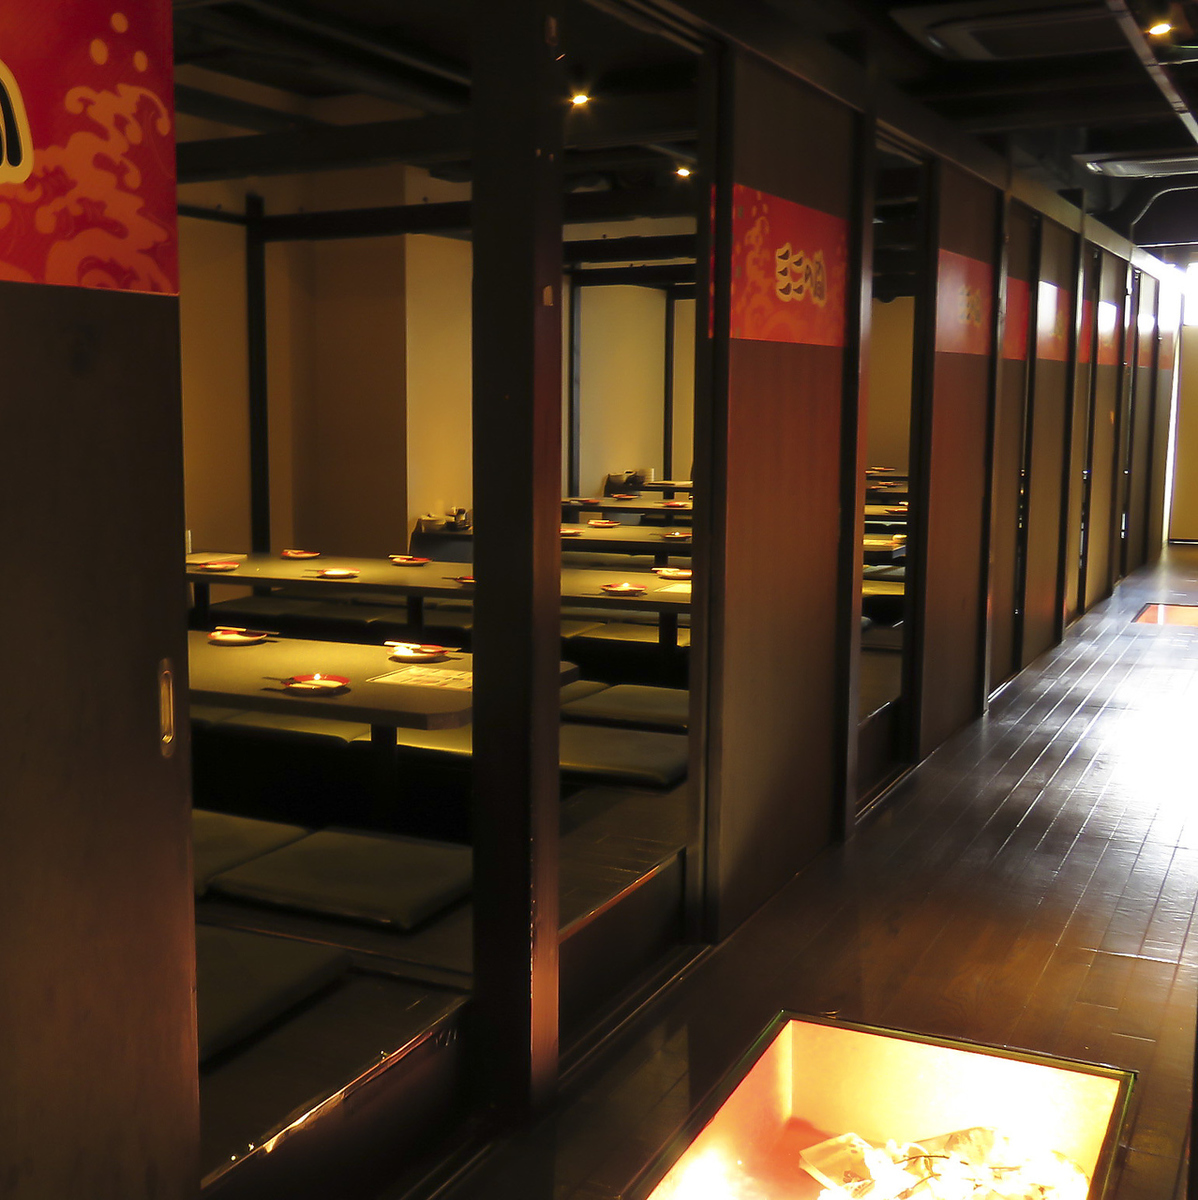 A total of 360 seats in the shop can accommodate up to 2 guests to 100 guests in a private room.